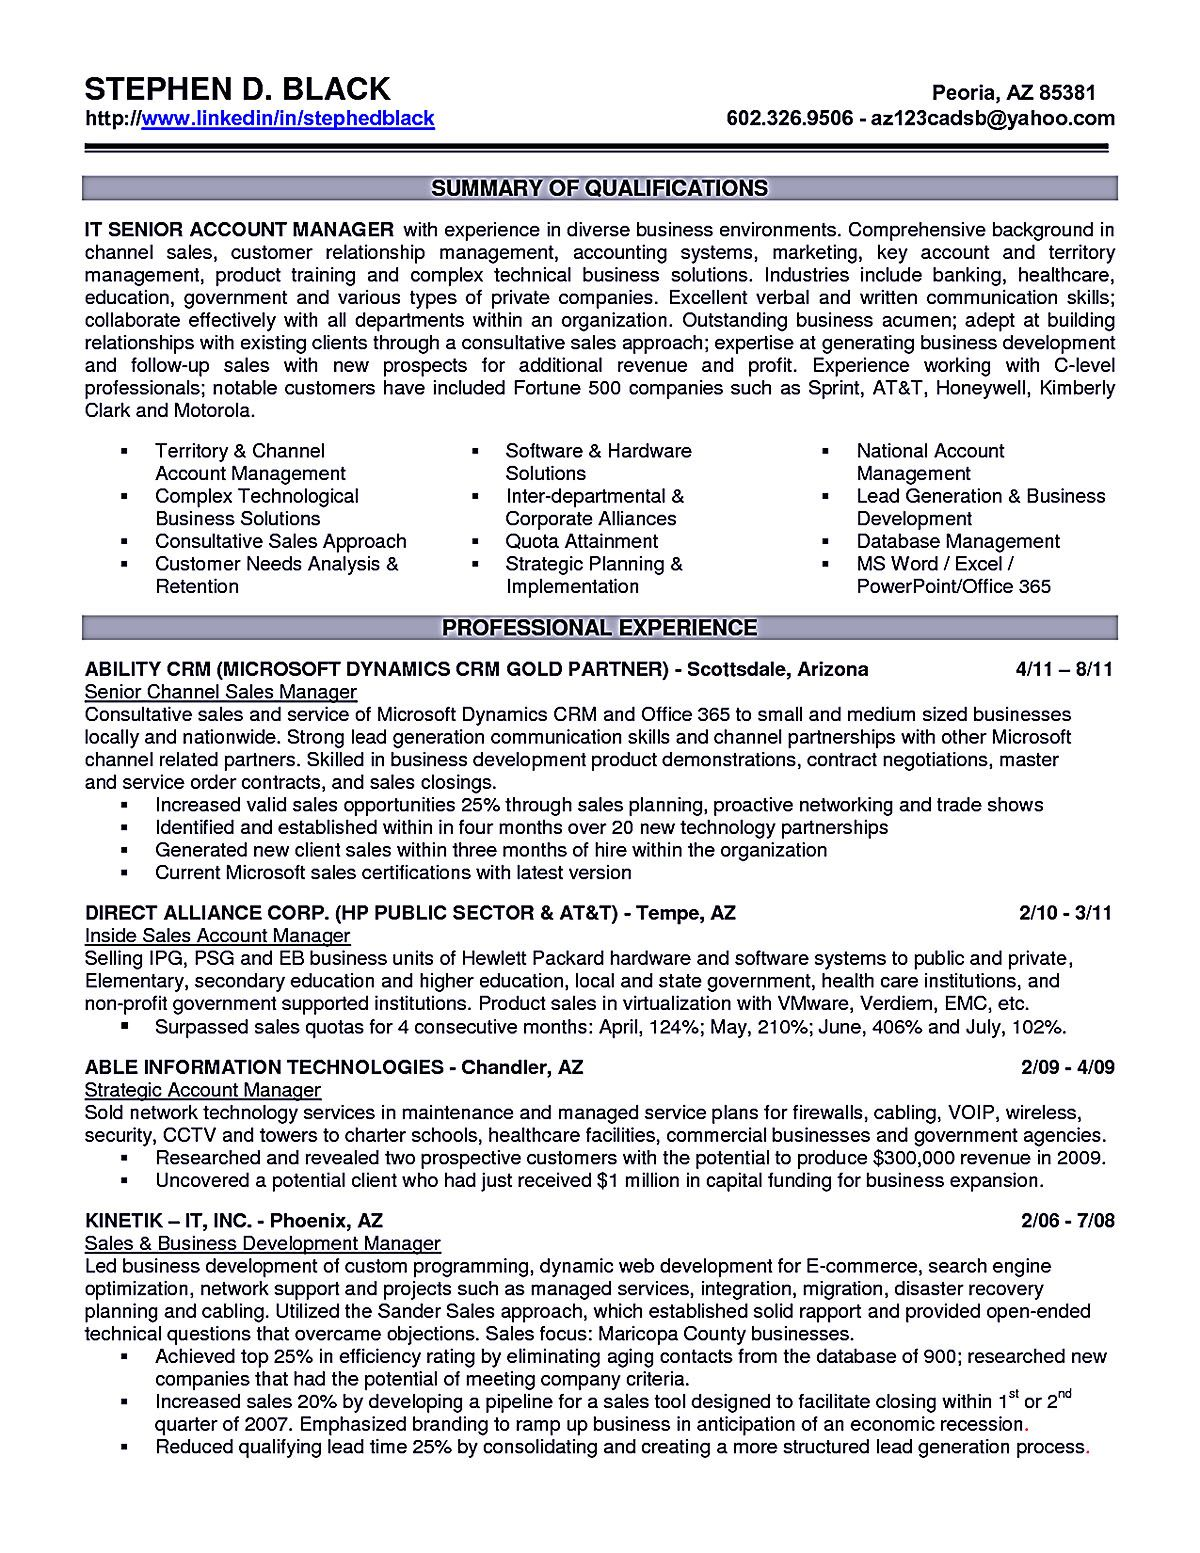 Account Executive Resume Is Like Your Weapon To Get The Job You Want Related To The Account Executive Position Executive Resume Resume Examples Manager Resume